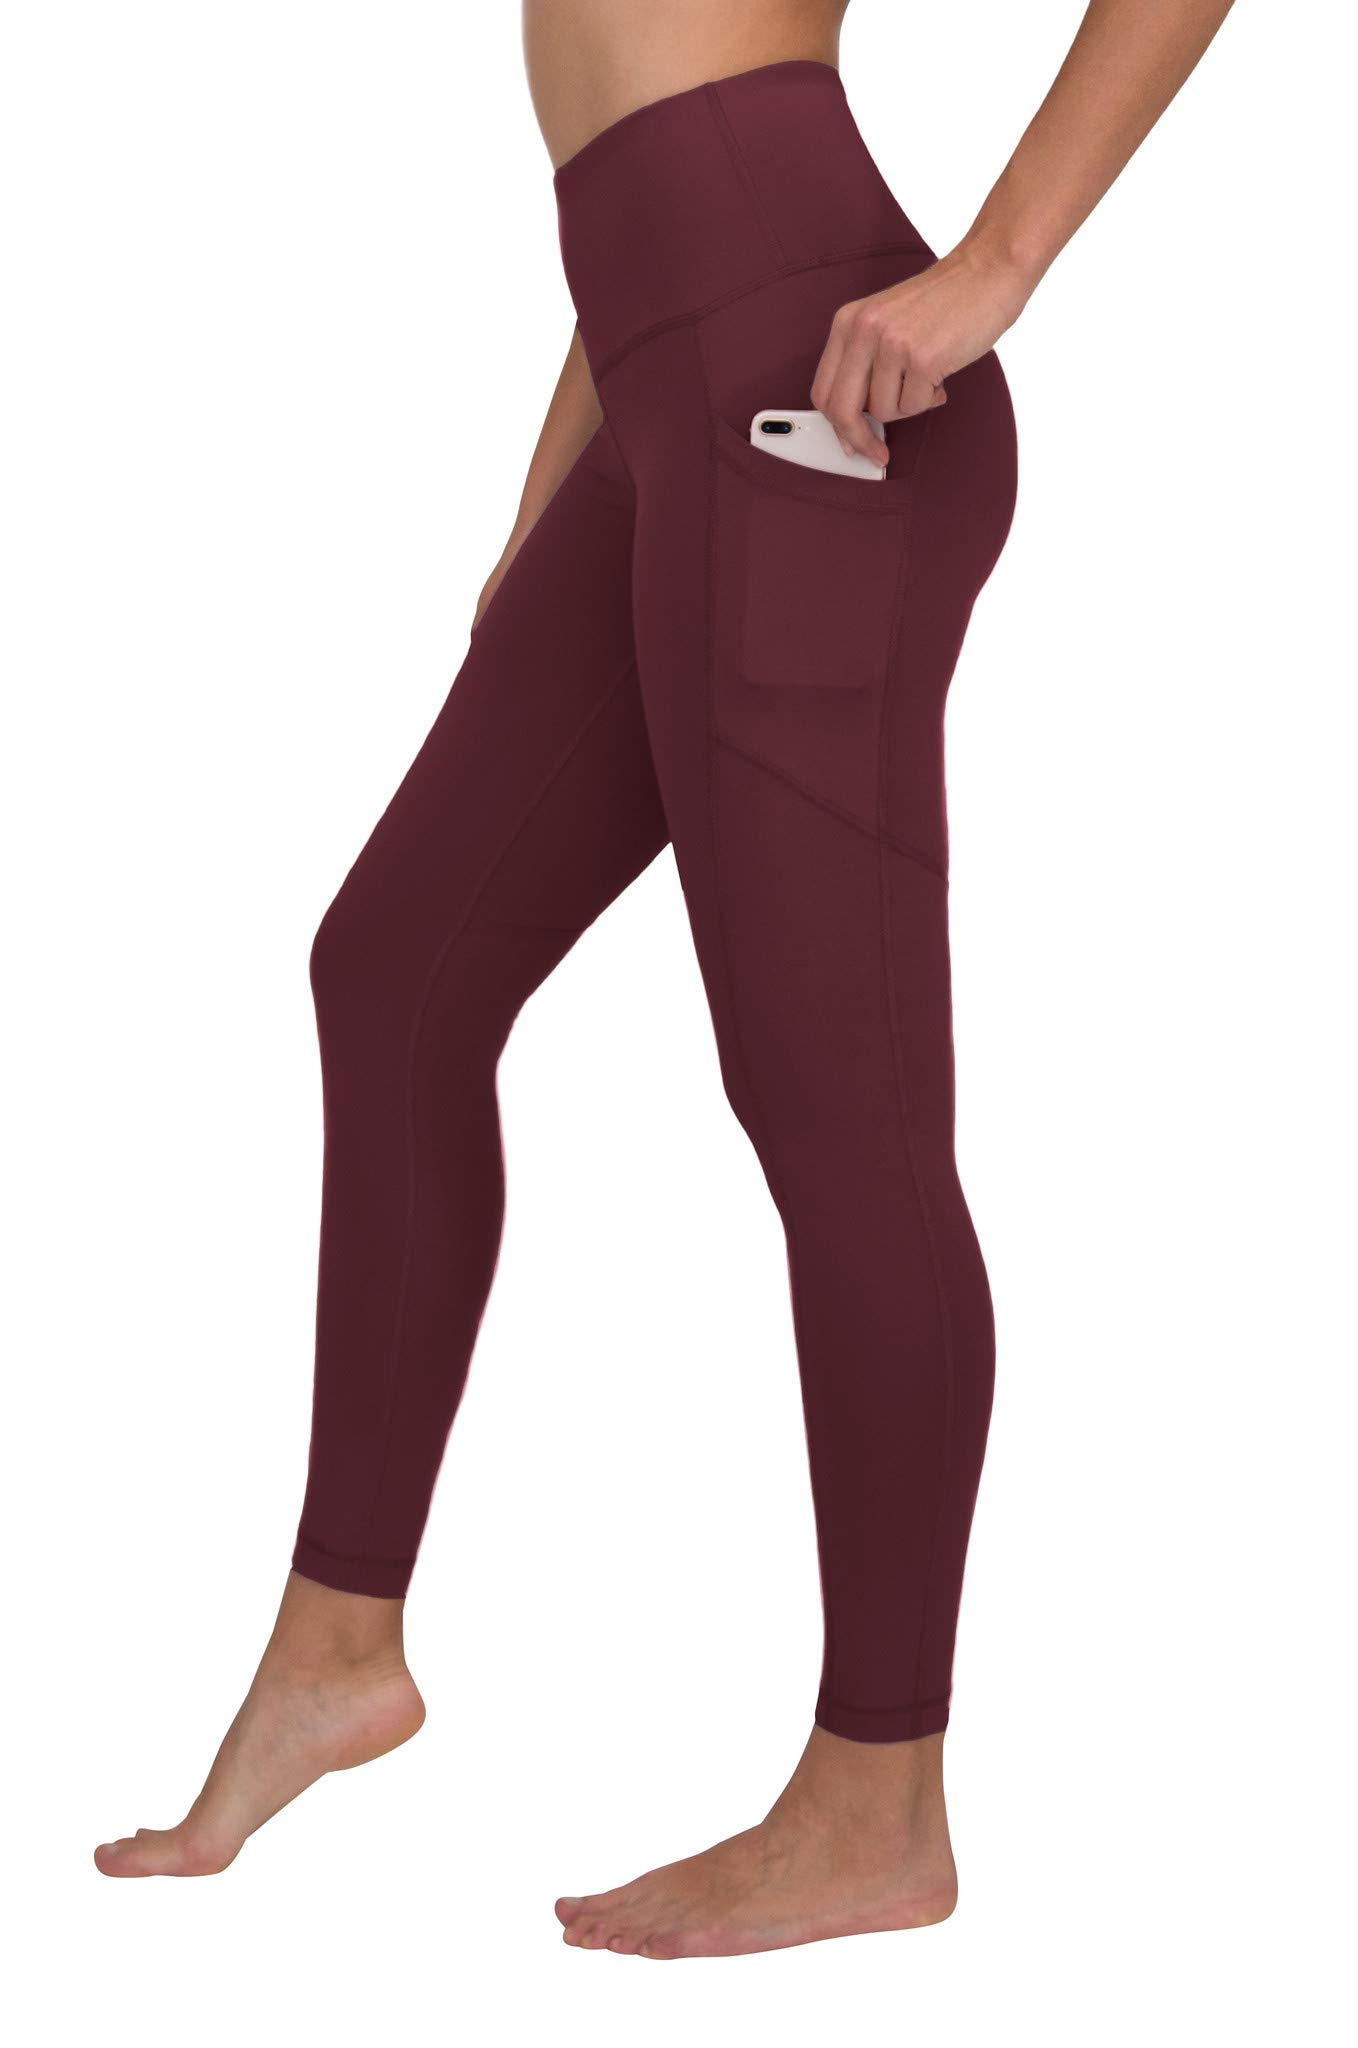 90 Degree By Reflex Women's Power Flex Yoga Pants - Cinnamon Cherry - XS by 90 Degree By Reflex